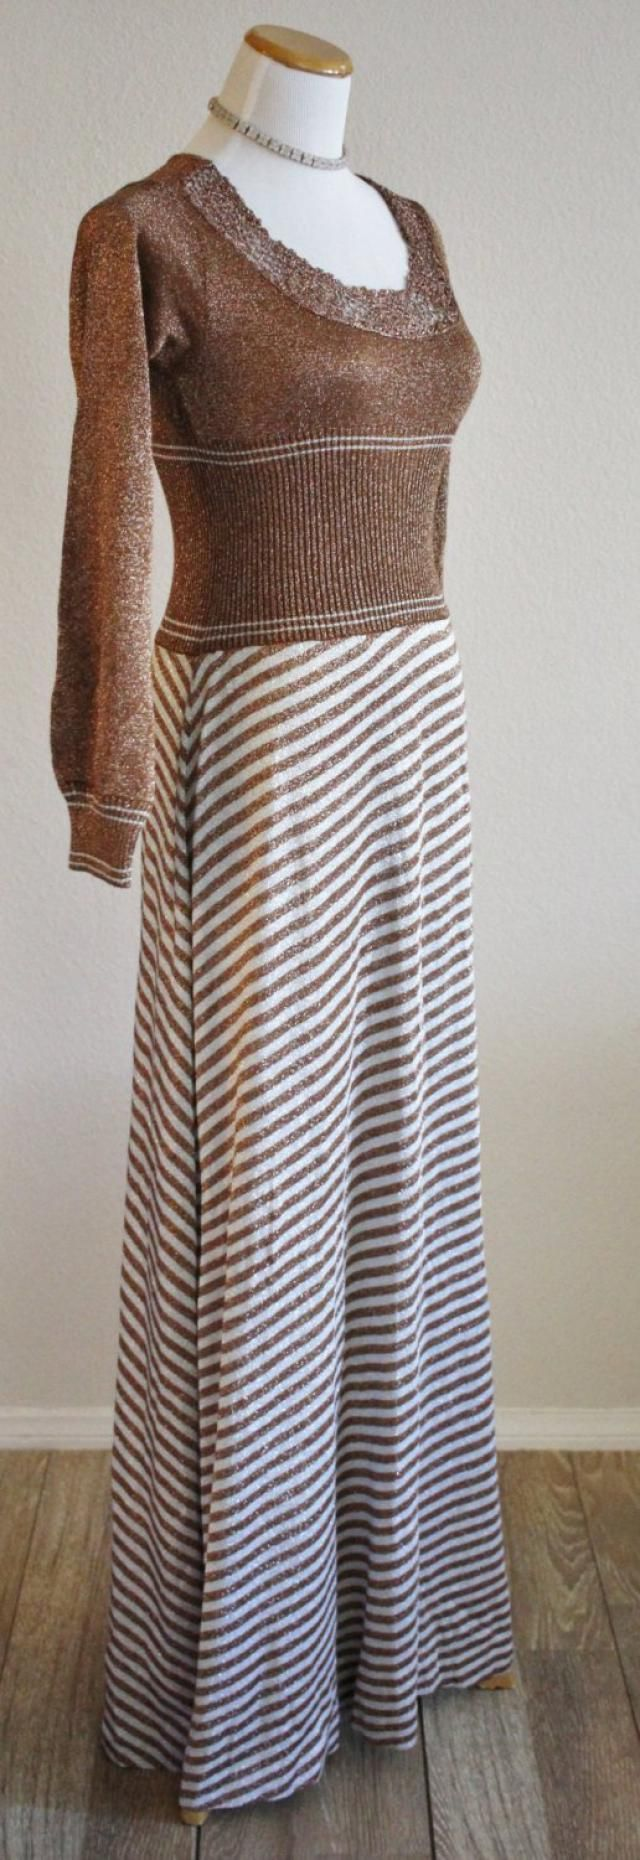 b6ea6e6bcab Vintage 60s 70s WENJILLI Copper Silver Metallic Knit Striped Acrylic  Sweater Maxi Dress Hong Kong